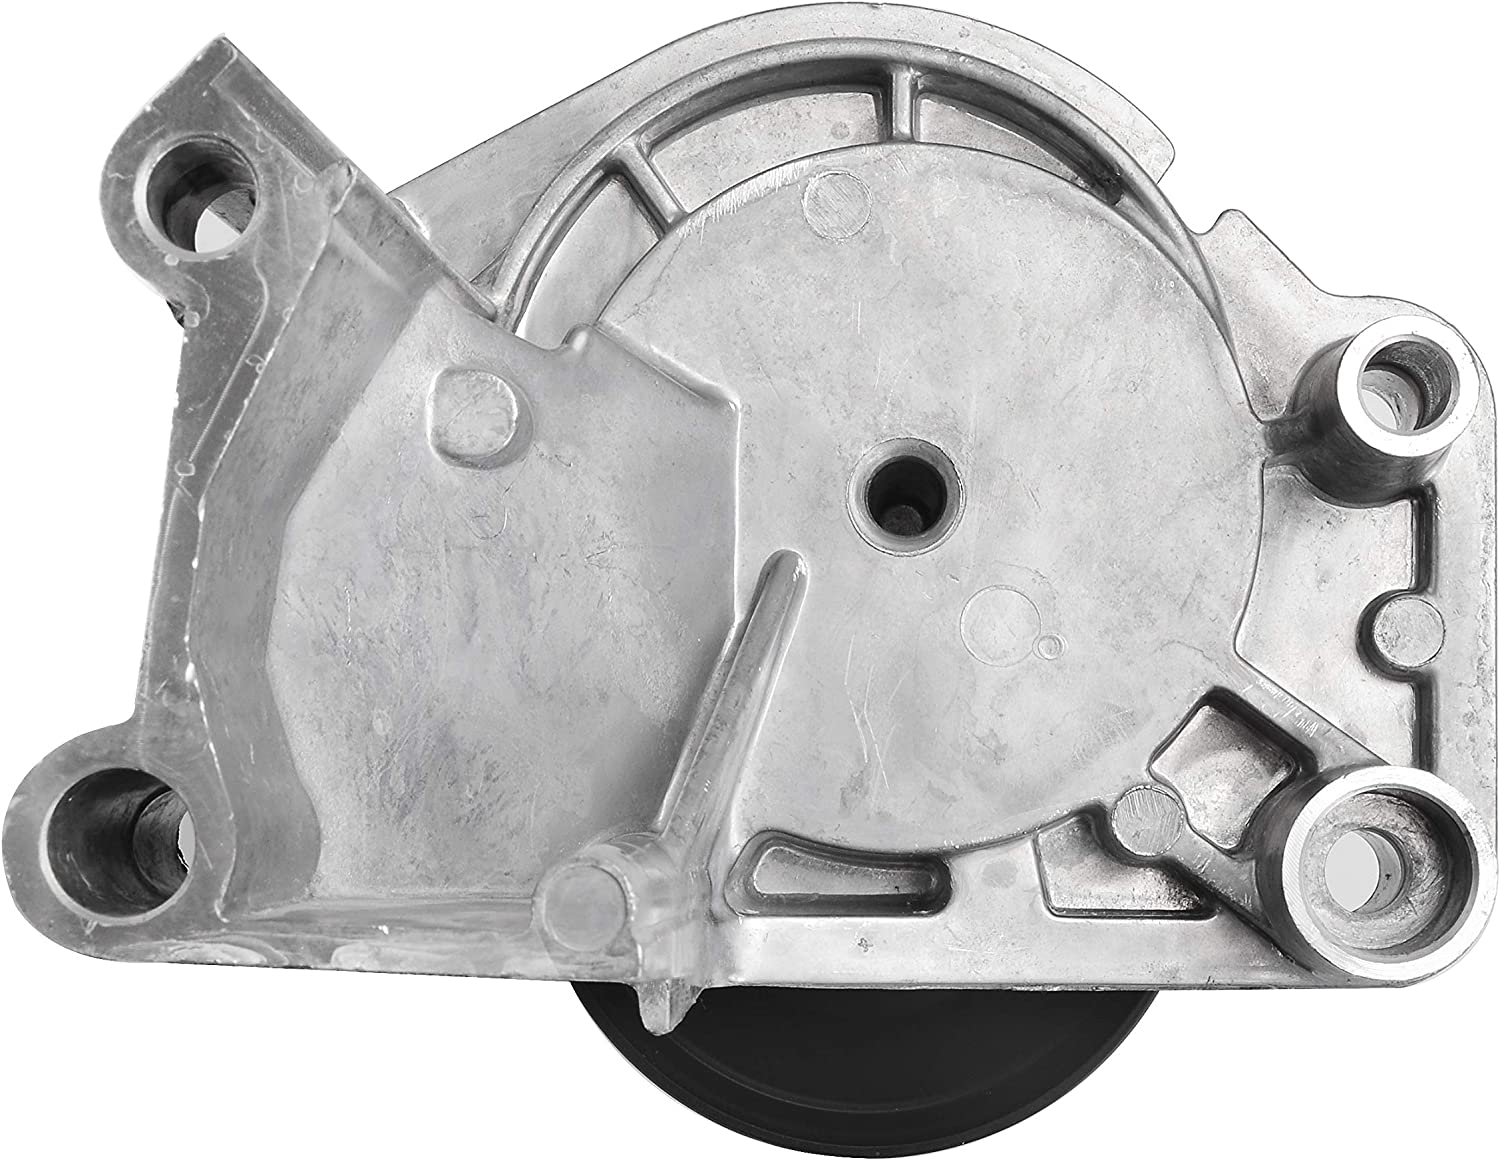 ADIGARAUTO 38488 Automatic Belt Tensioner w//Pully Compatible with Lexus GS430 GX470 LS430 LX470 SC430 Toyota 4Runner Land Cruiser Sequoia Tundra 2003-2009